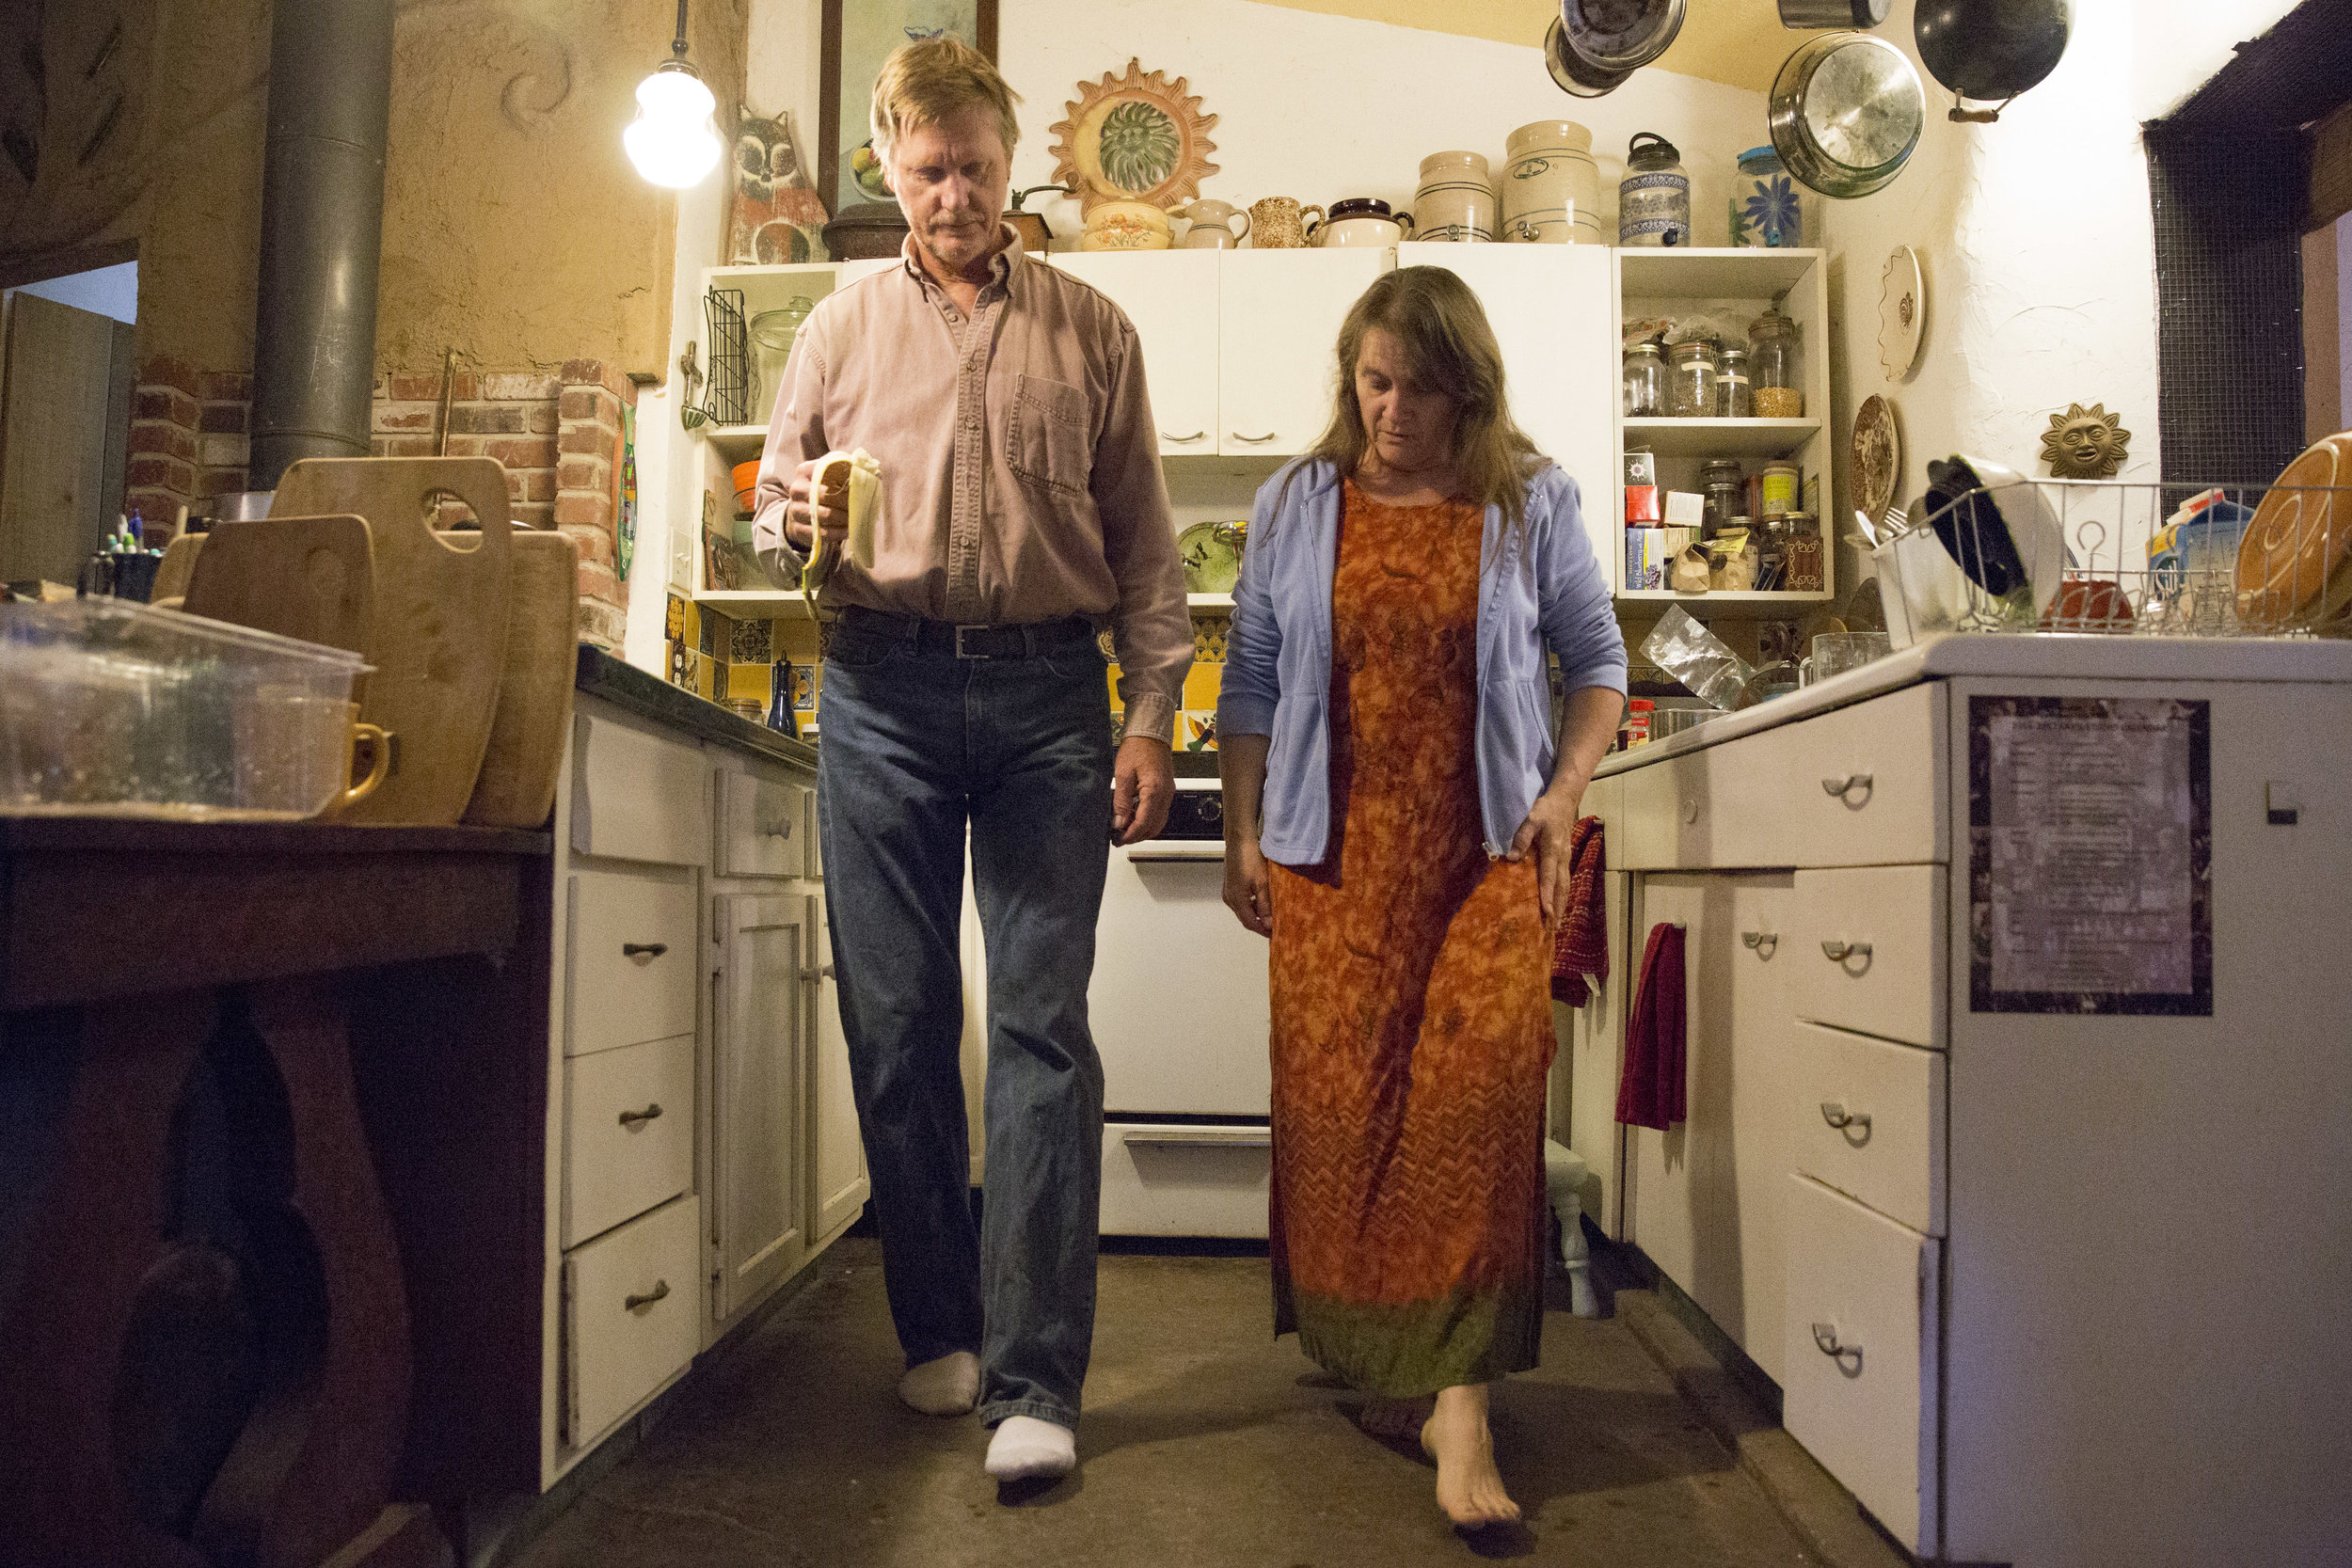 Lorian Moore teaches Rex Rohrer walking meditation in their kitchen. Moore attends meditation at Lisa Hoovers house every Wednesday morning.